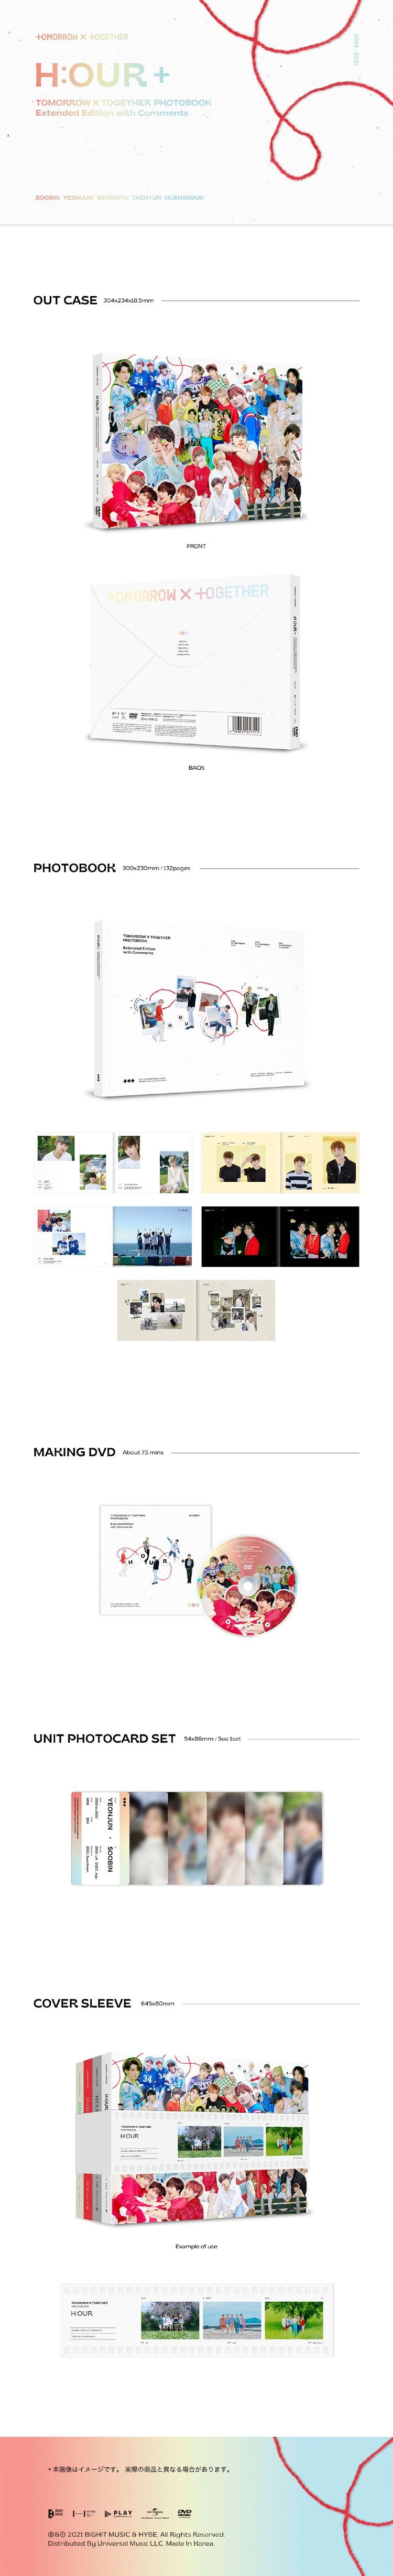 TOMORROW X TOGETHER (TXT) 3RD PHOTO BOOK 'H:OUR IN SUNCHEON' H:OUR+ DETAIL